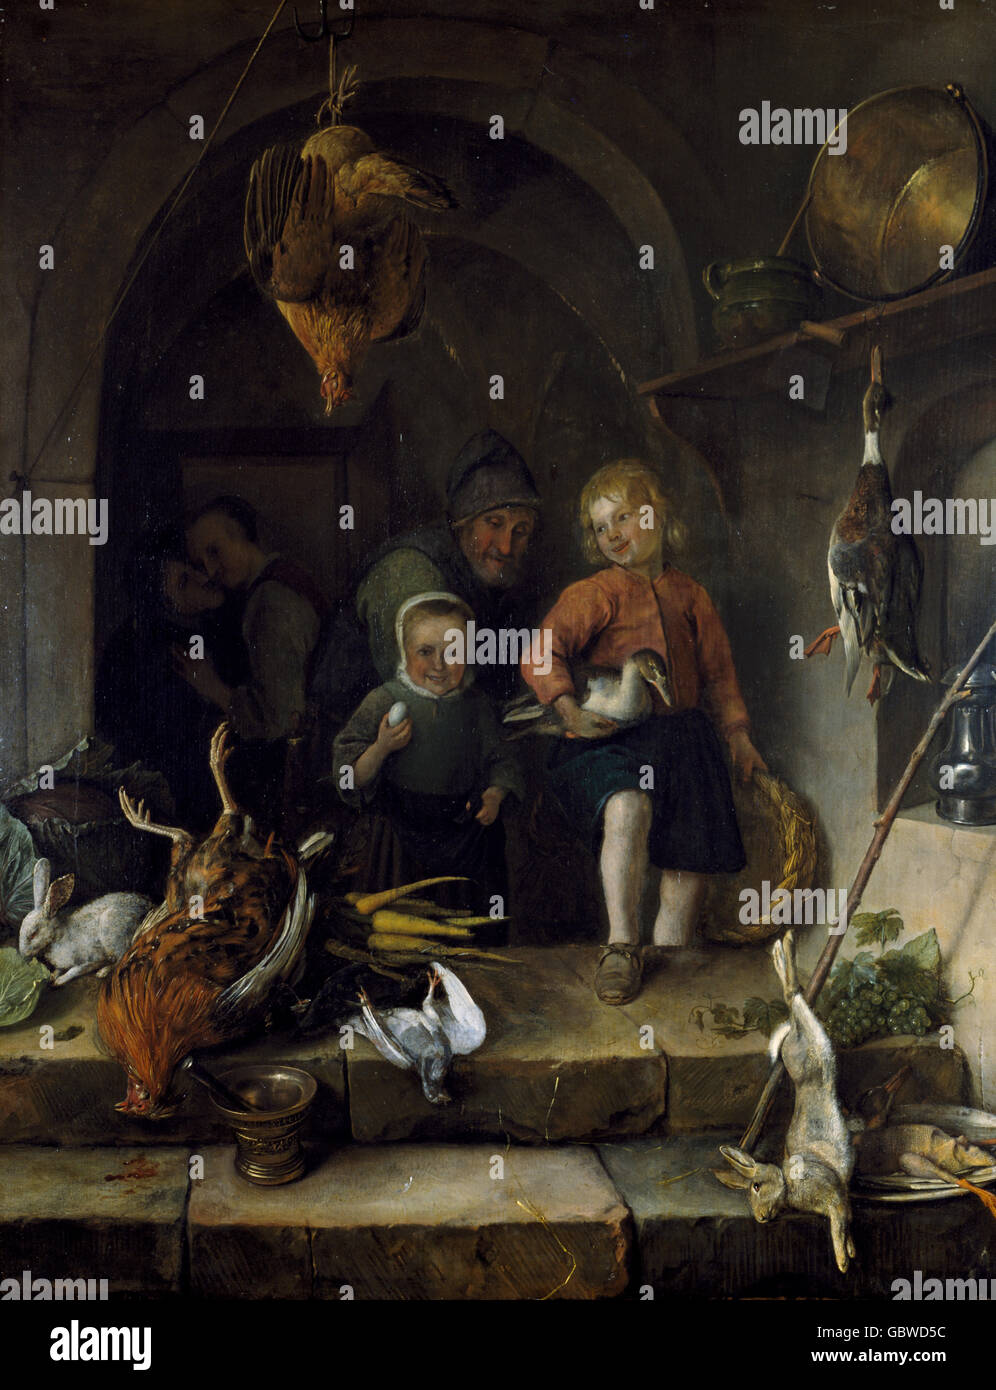 people, three generations, genre painting with family and food, by Jan Steen (1626 - 1679), Netherlands, 17th century, - Stock Image